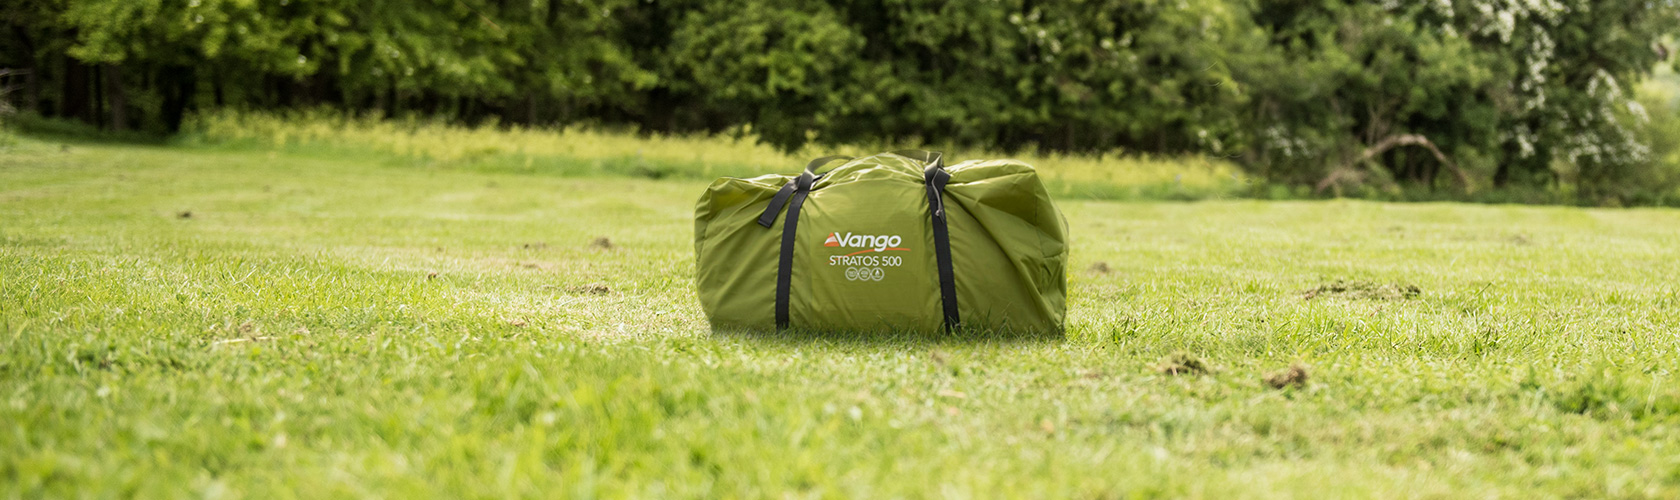 Vango Tent Packed Up In Middle Of Field